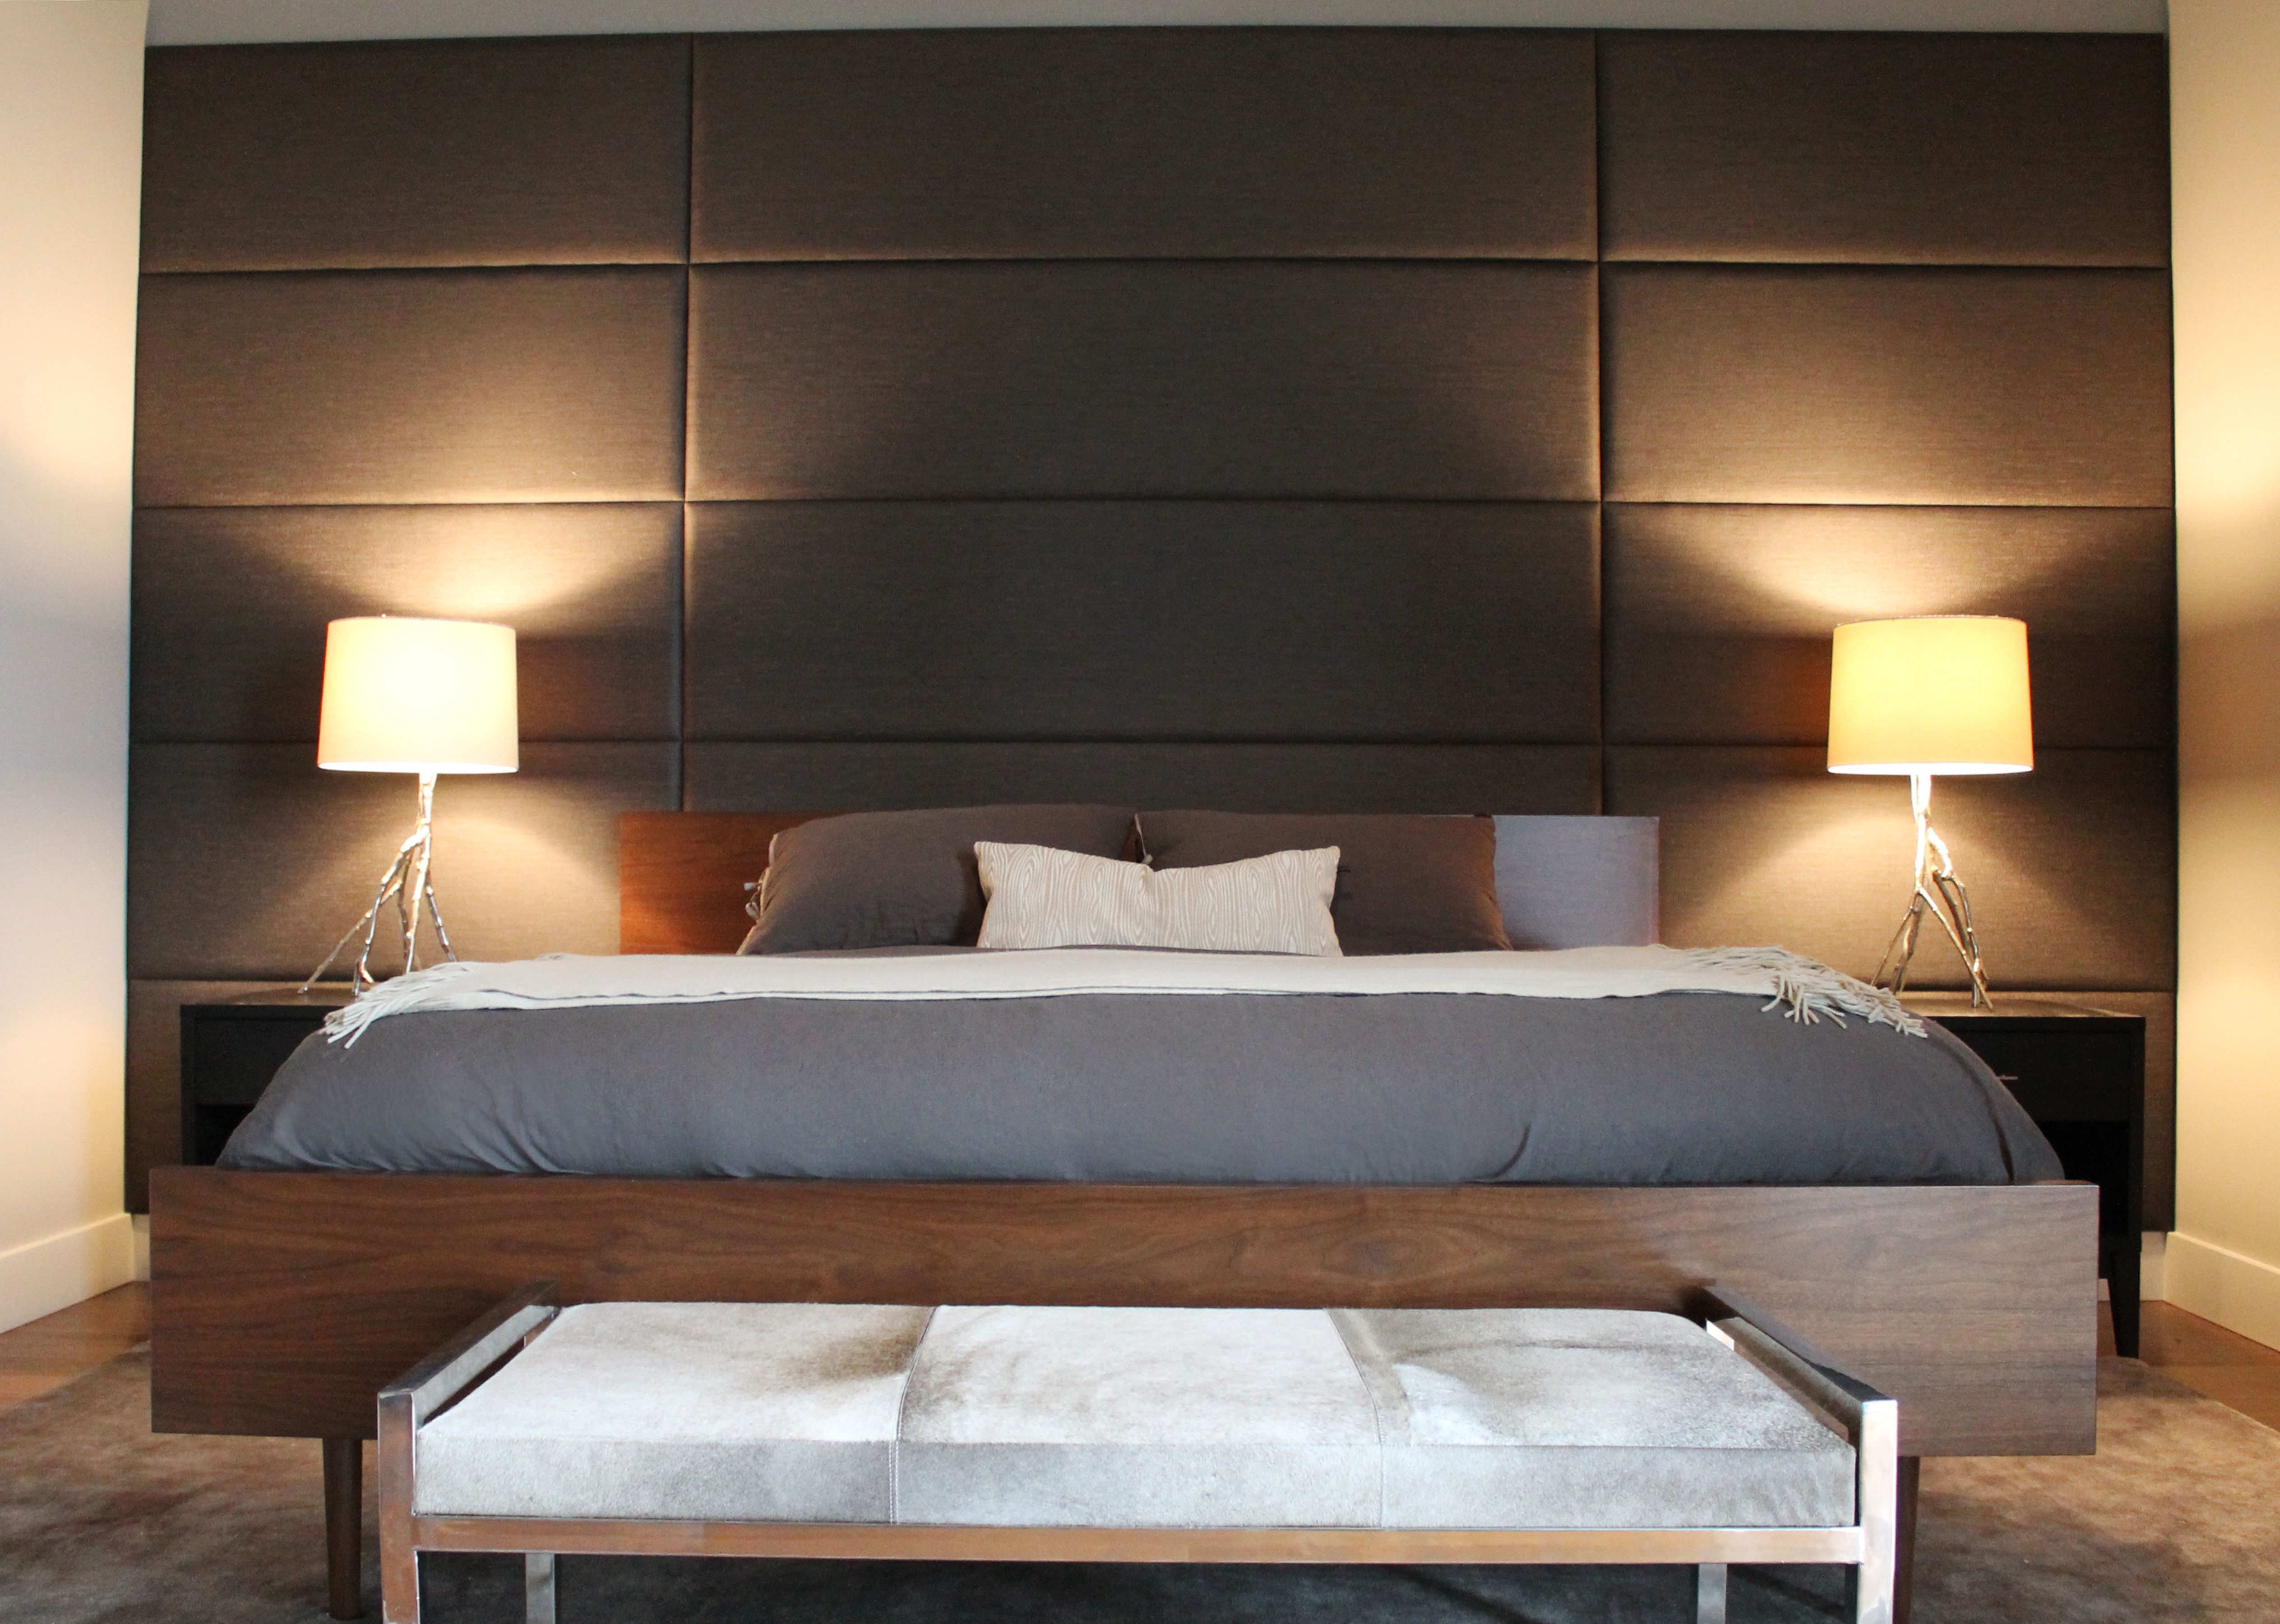 25 hotel inspired bedroom ideas for luxurious nuance #18960